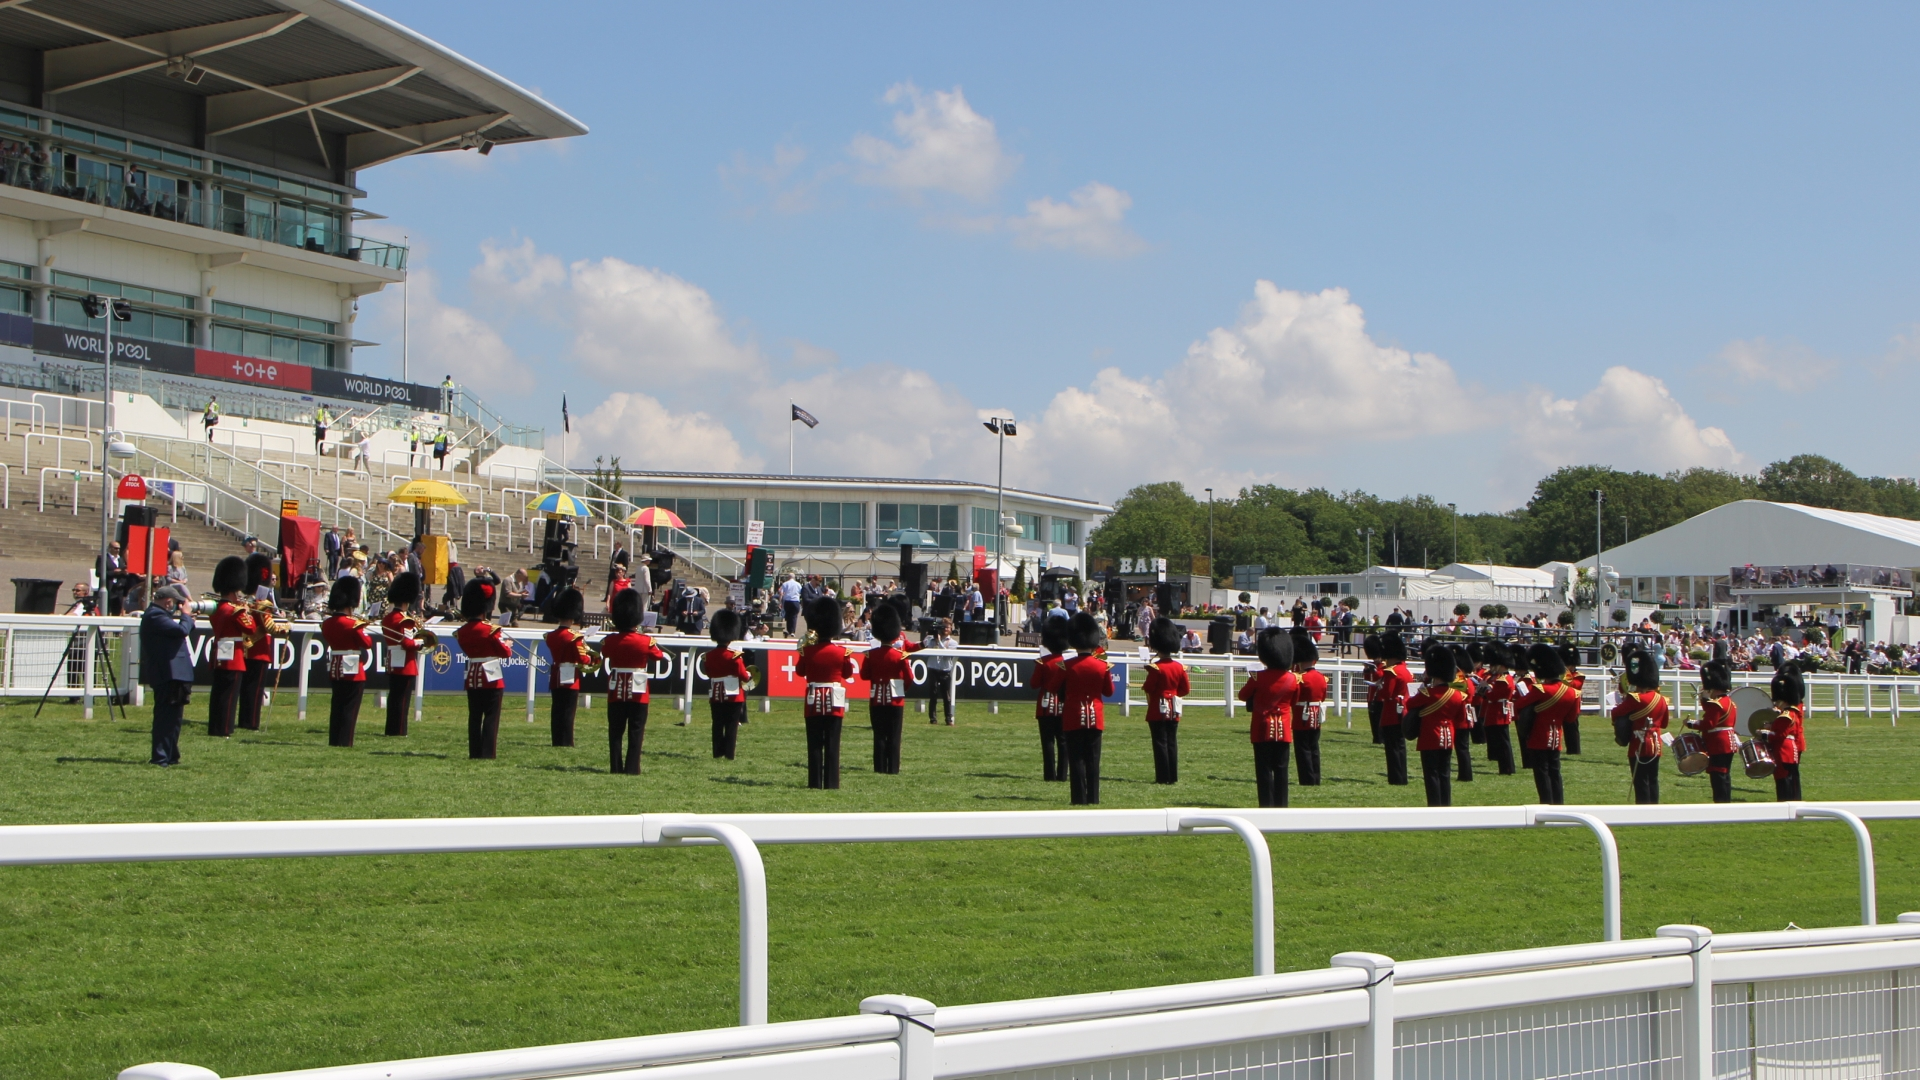 Epsom Derby 2021 Opening Show PA for royal military band